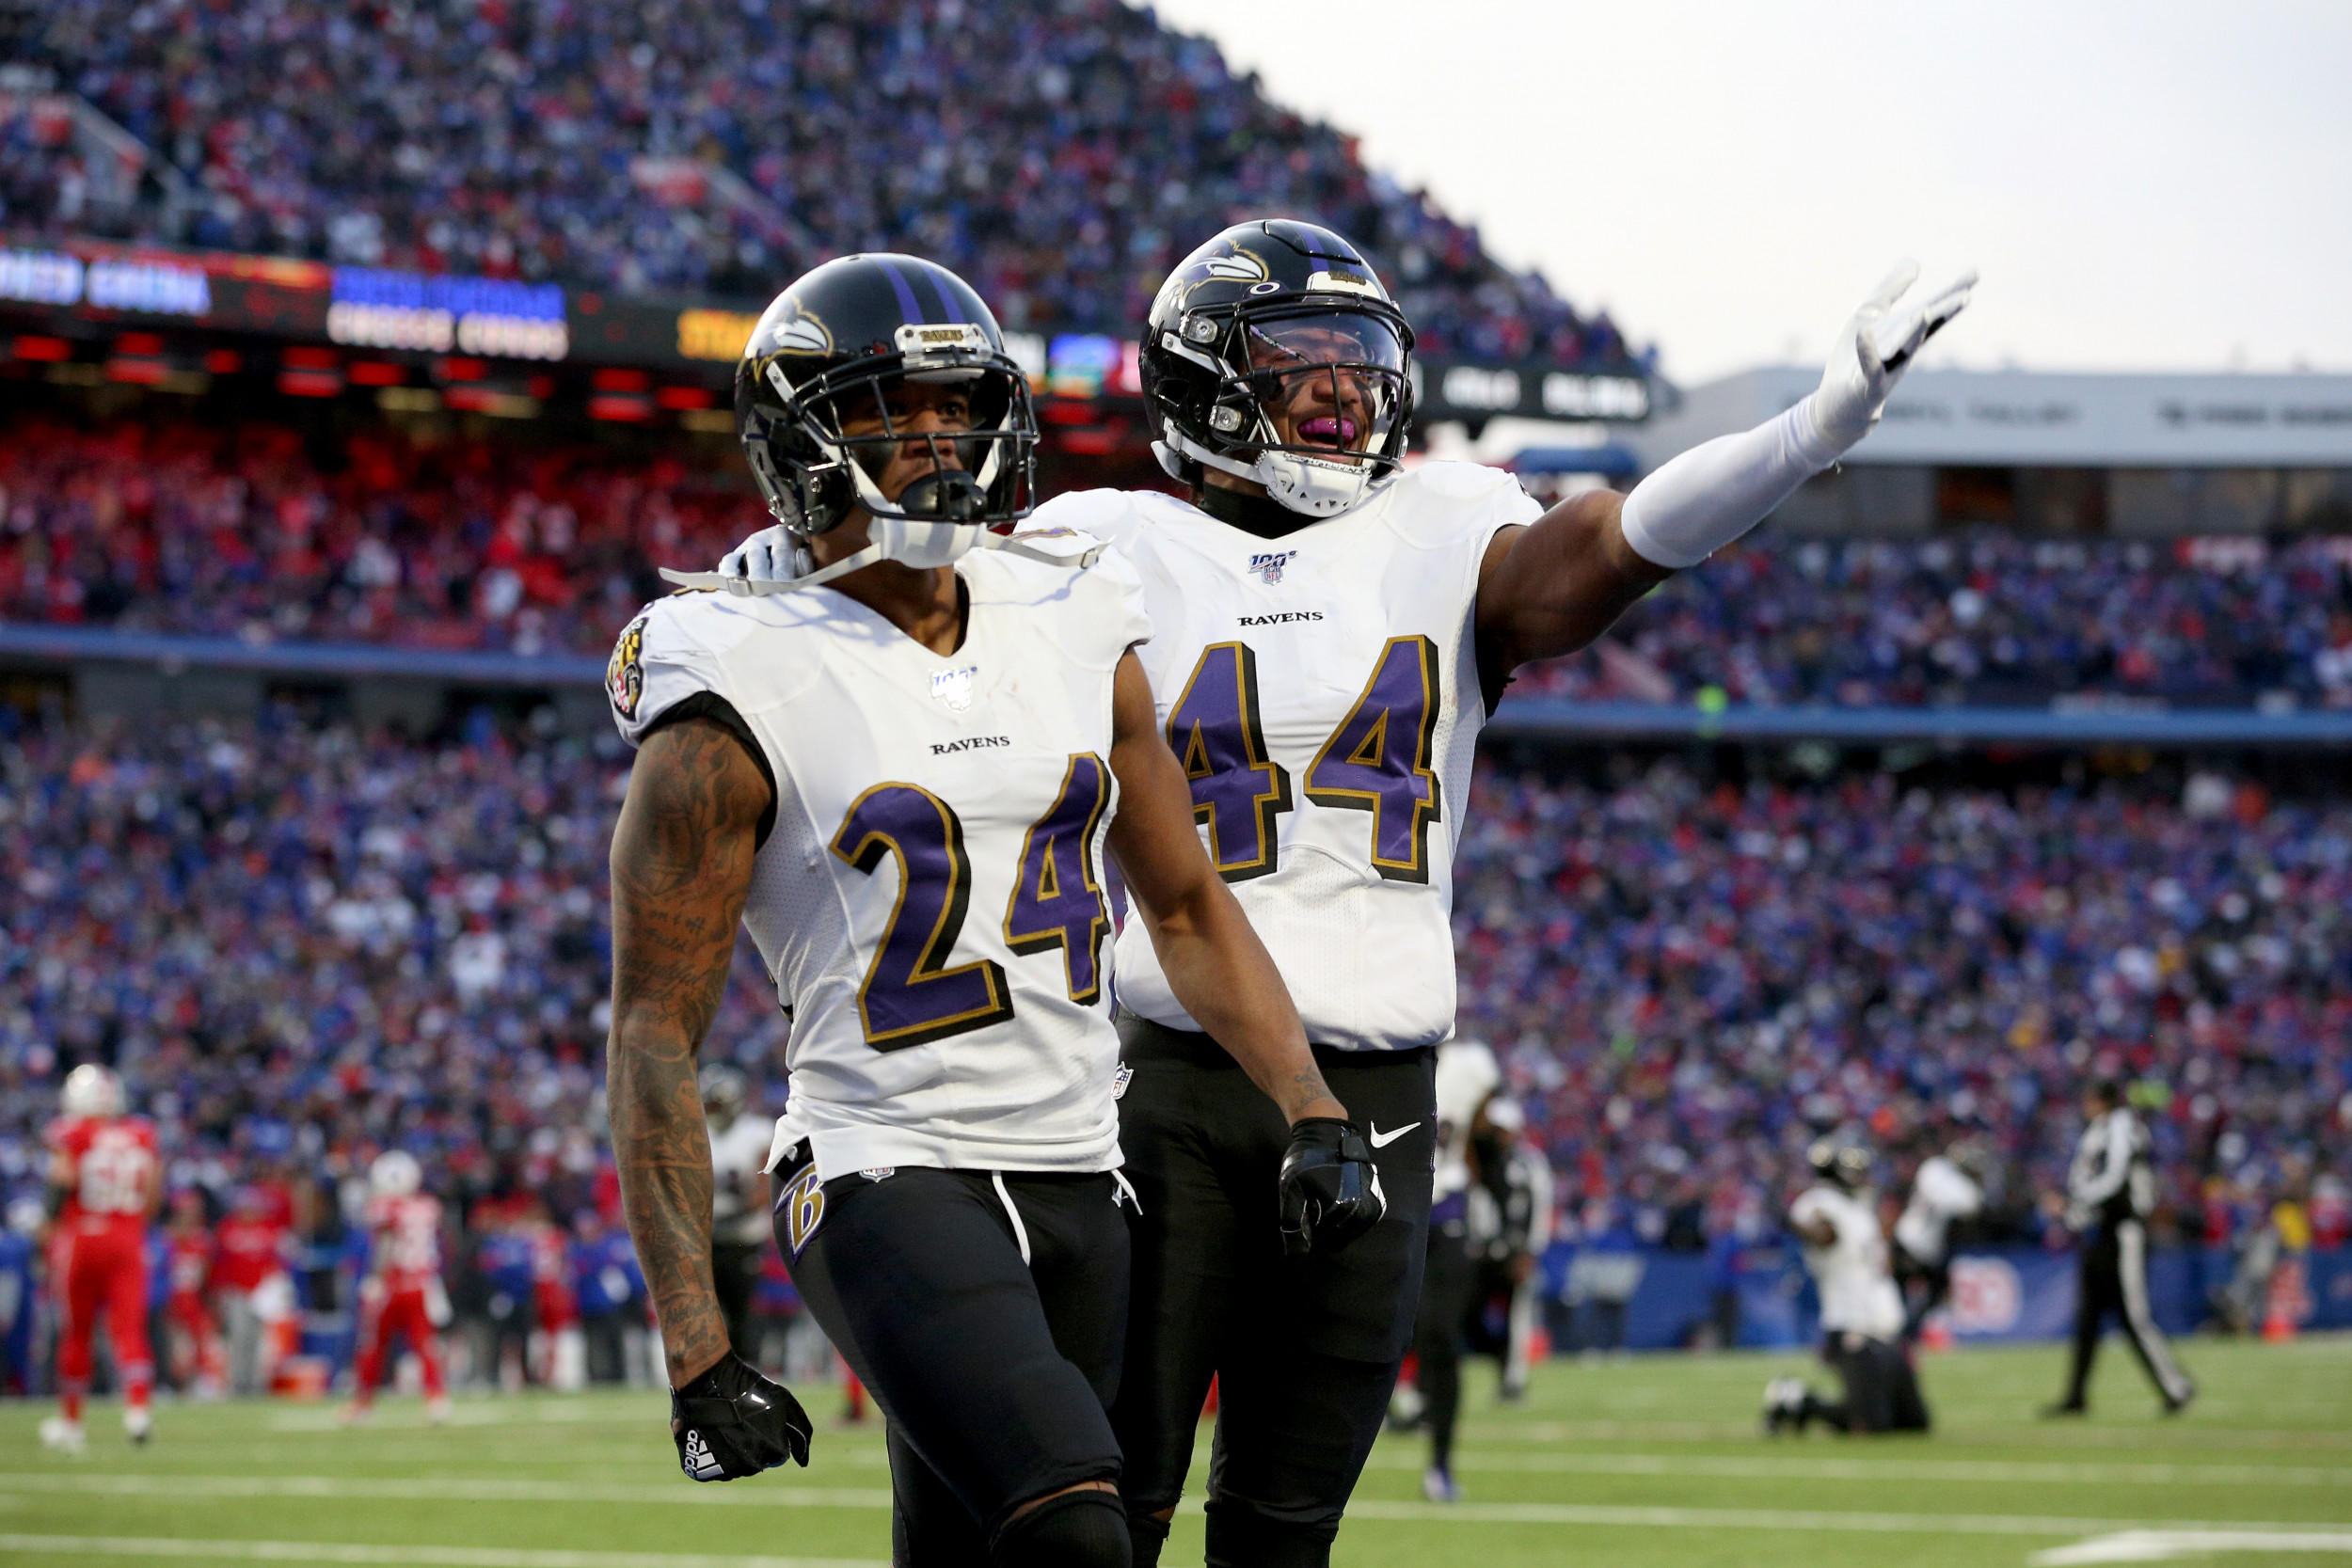 2019 Thursday Night Football Schedule How To Watch Live Stream New York Jets Vs Baltimore Ravens The jets do have the no. 2019 thursday night football schedule